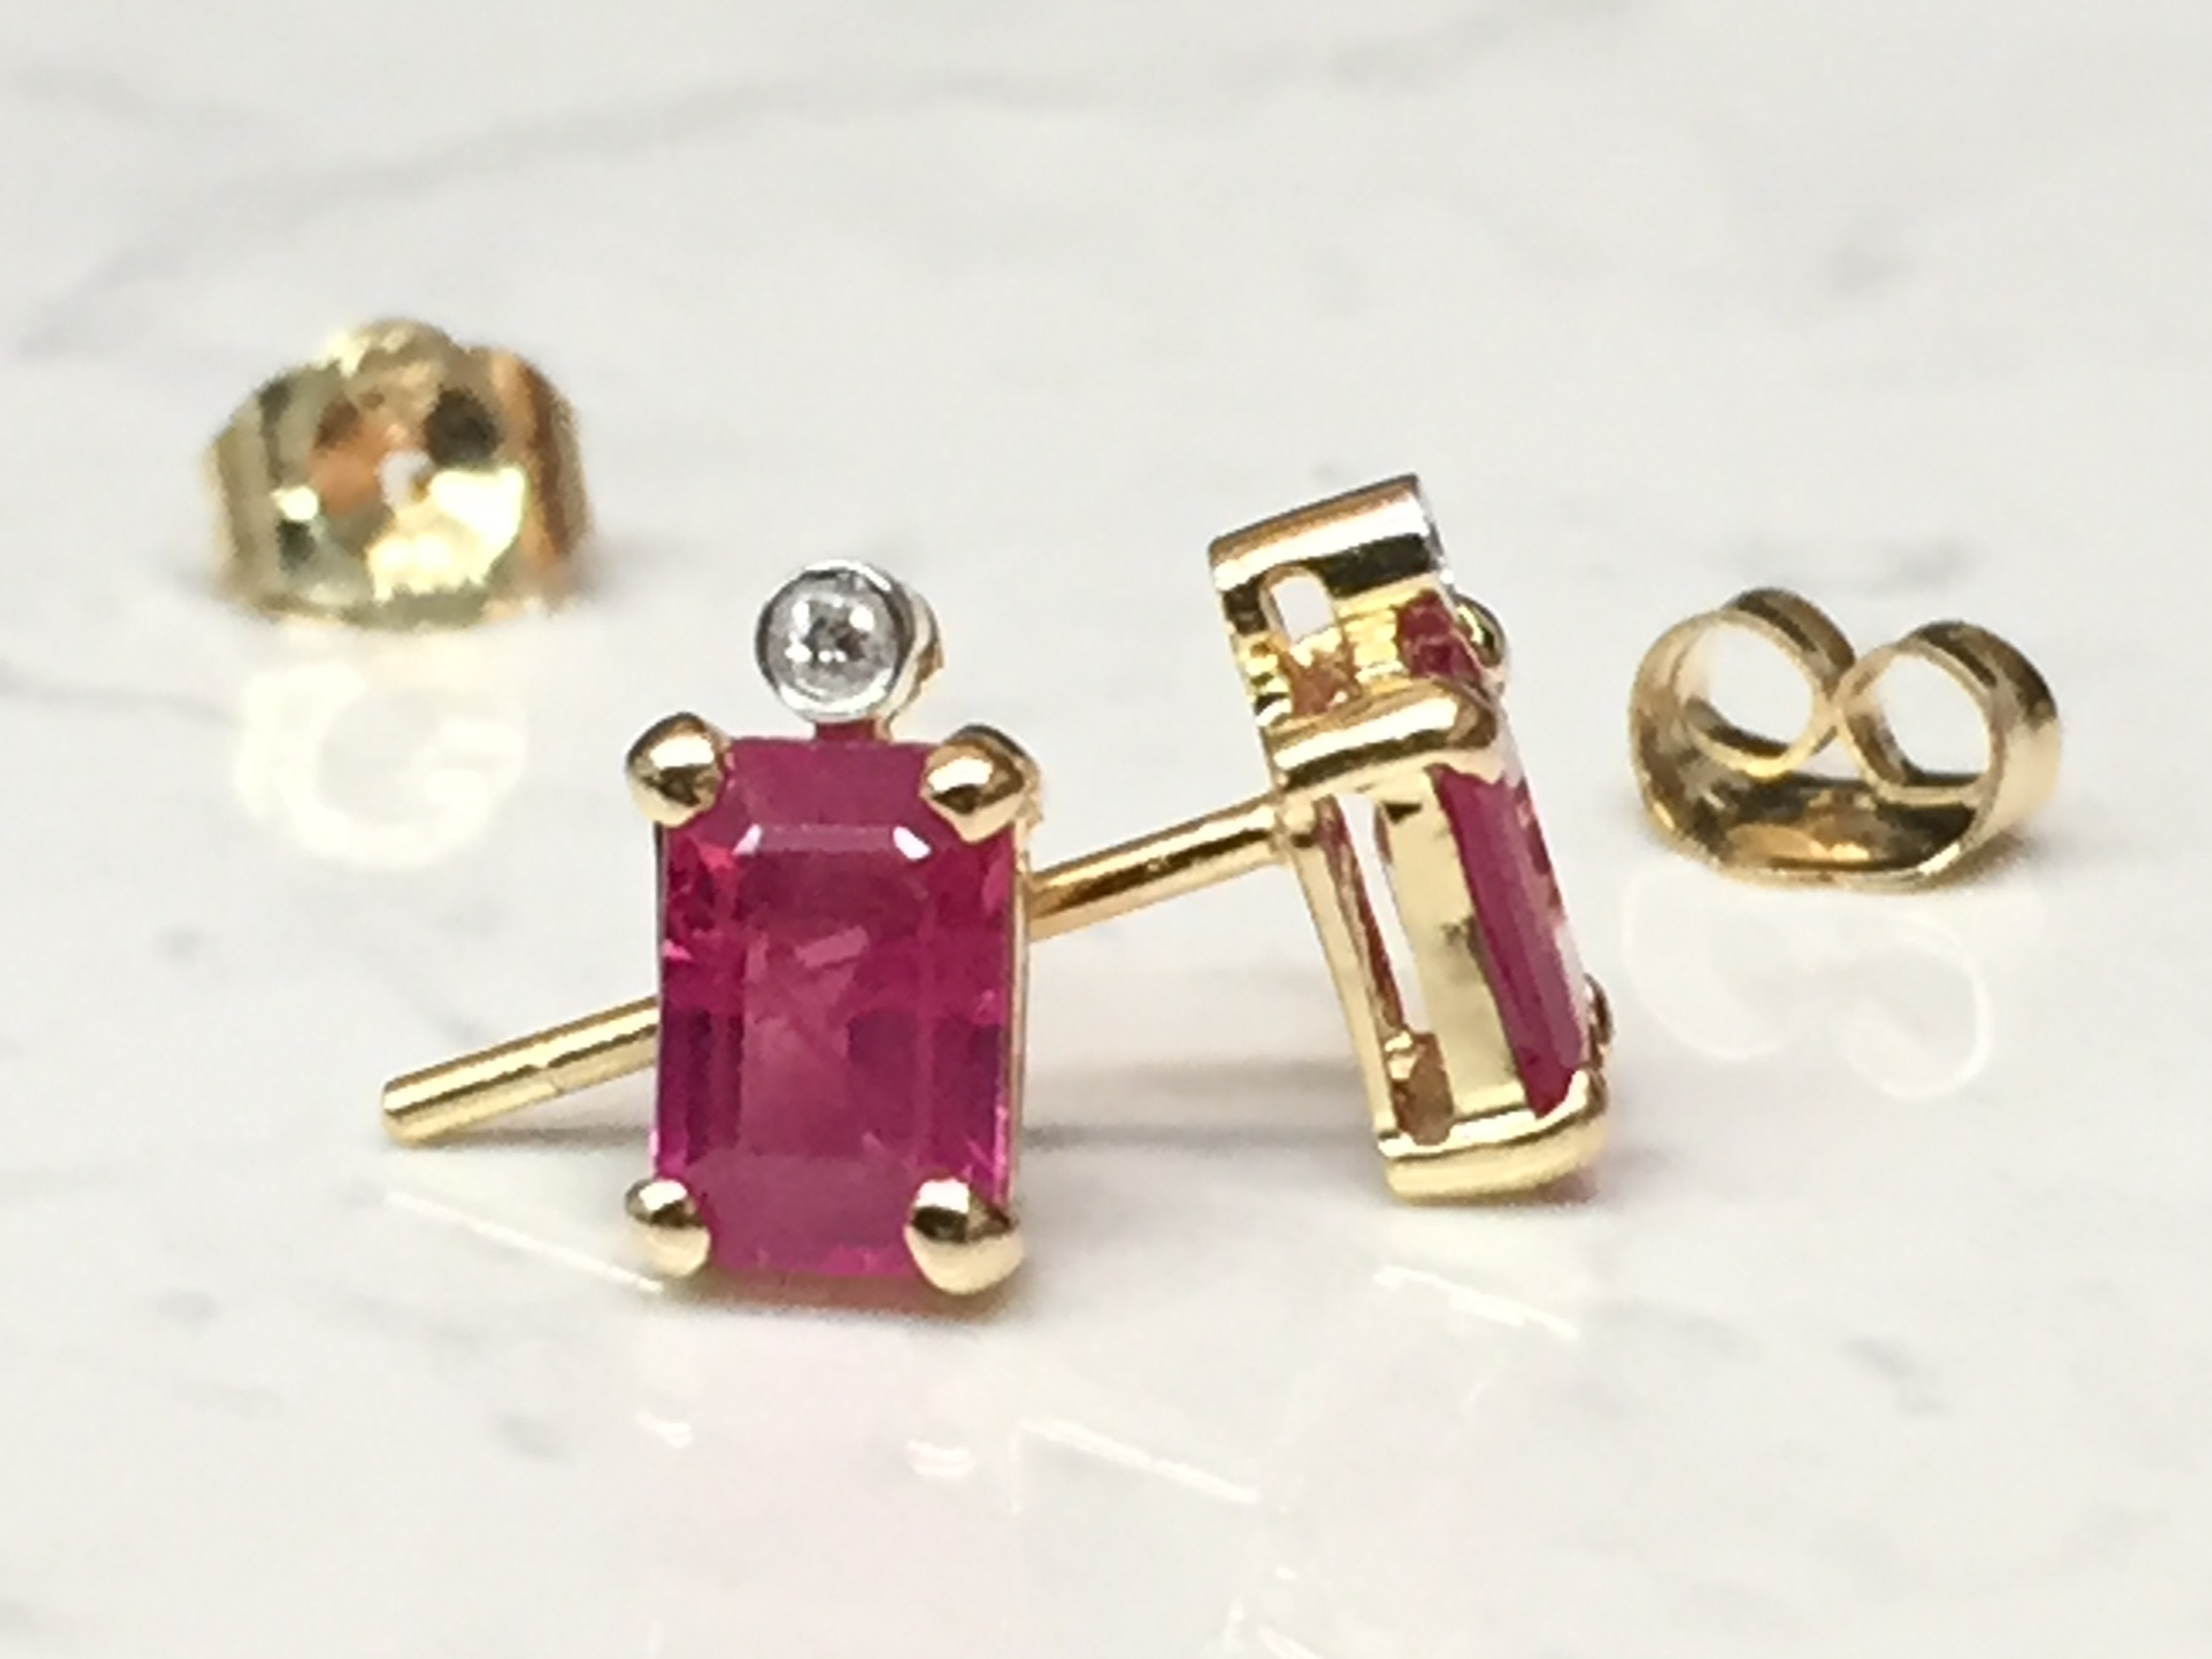 Gorgeous step-cut Ruby earrings with diamond accents